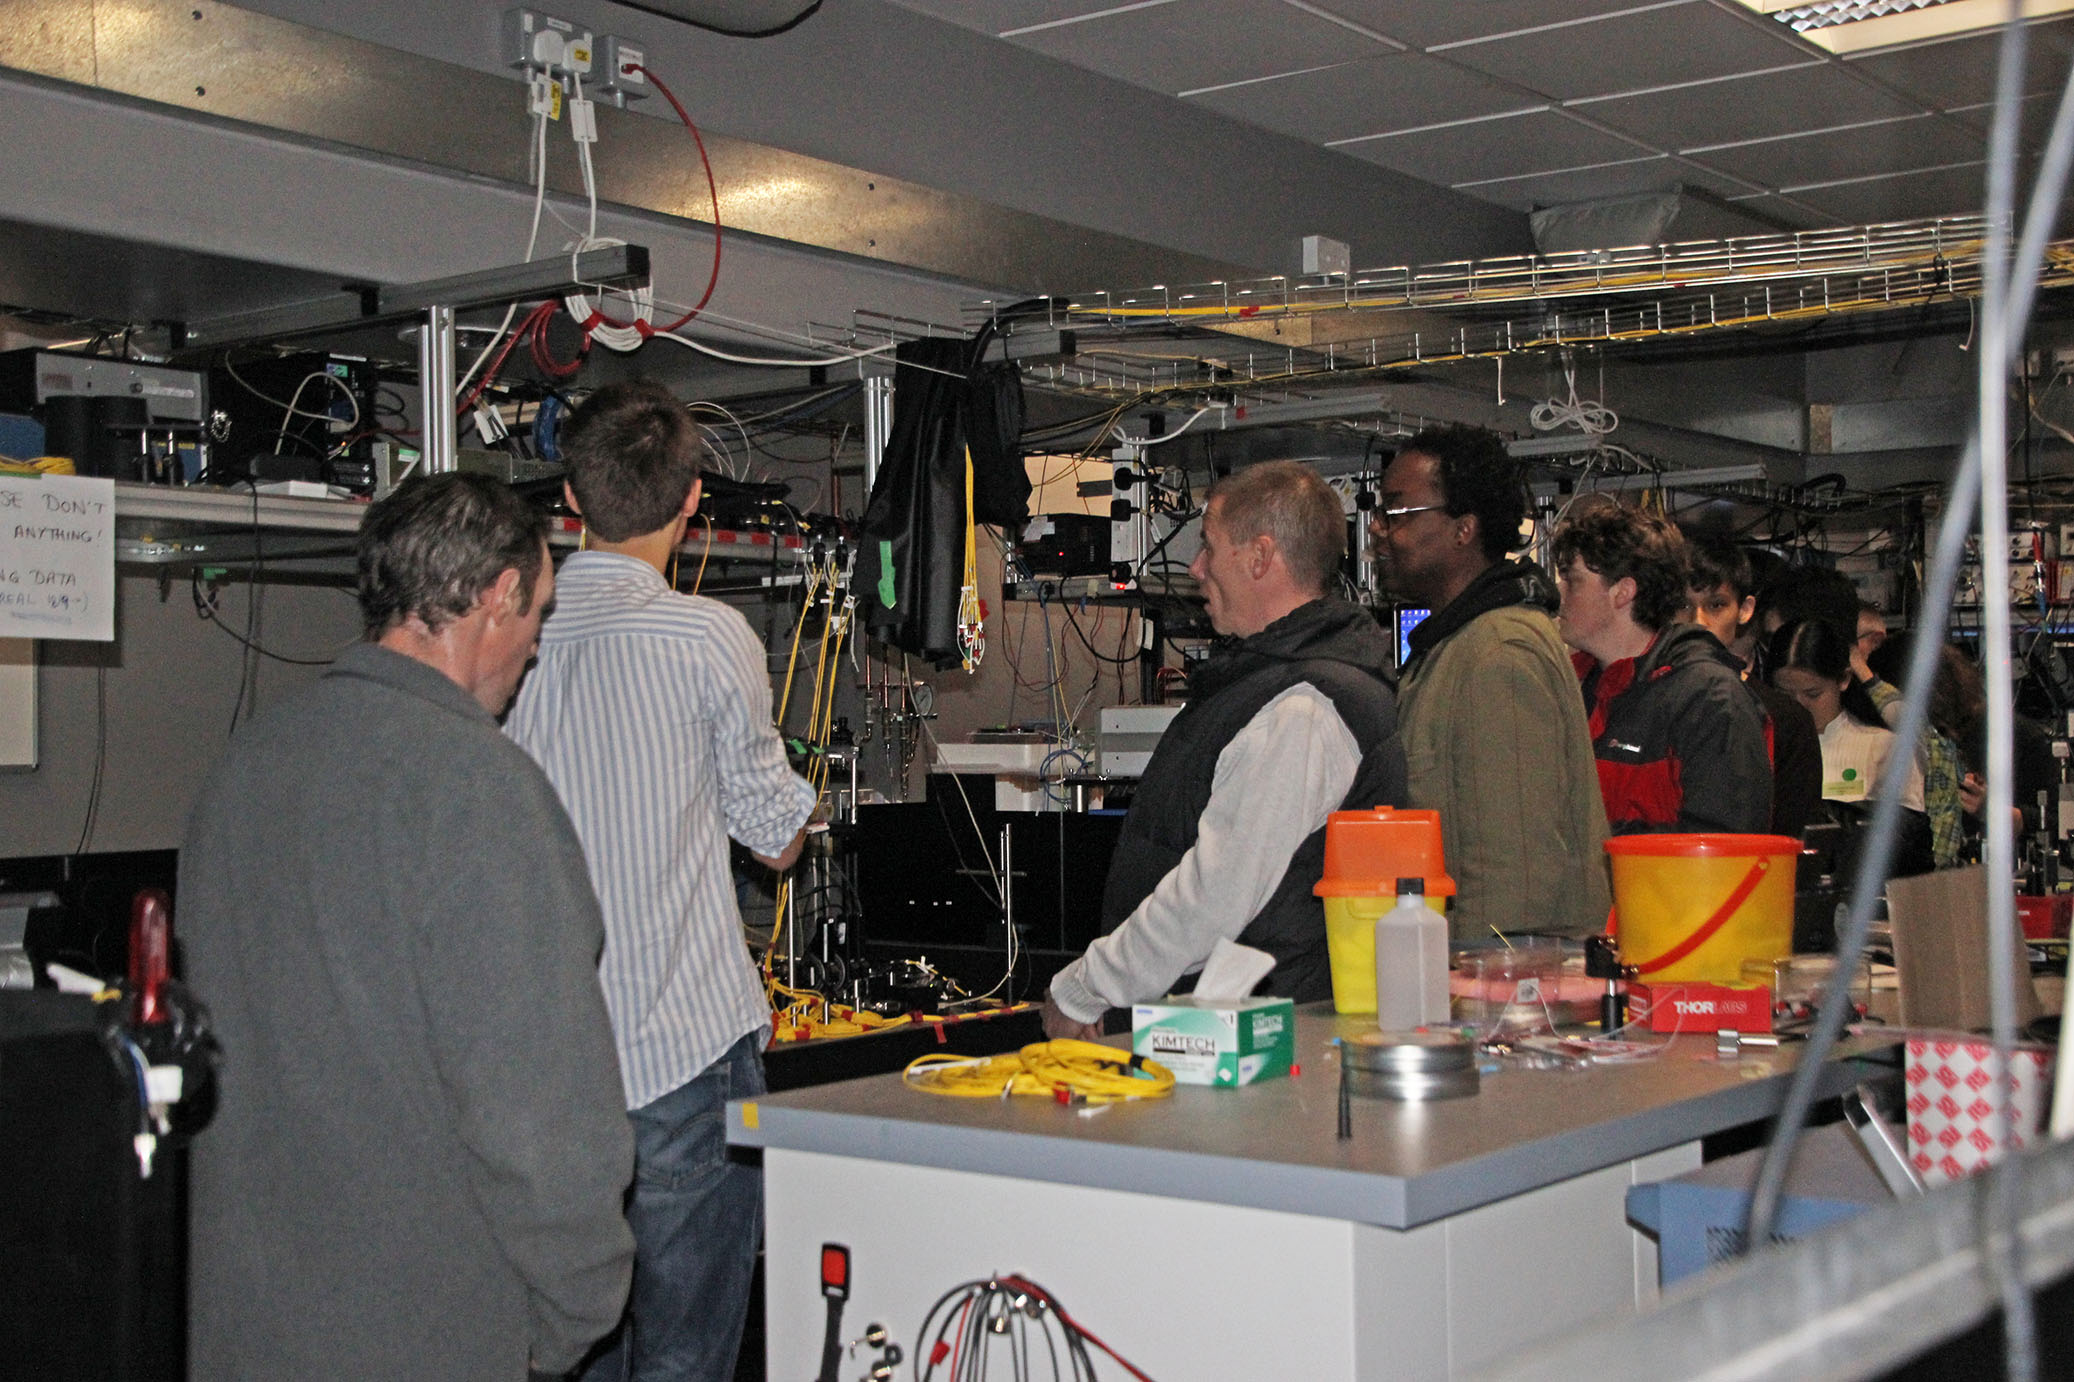 Lab tours at the Evening of Quantum Discovery / Credit: Olga Brecht, NQIT